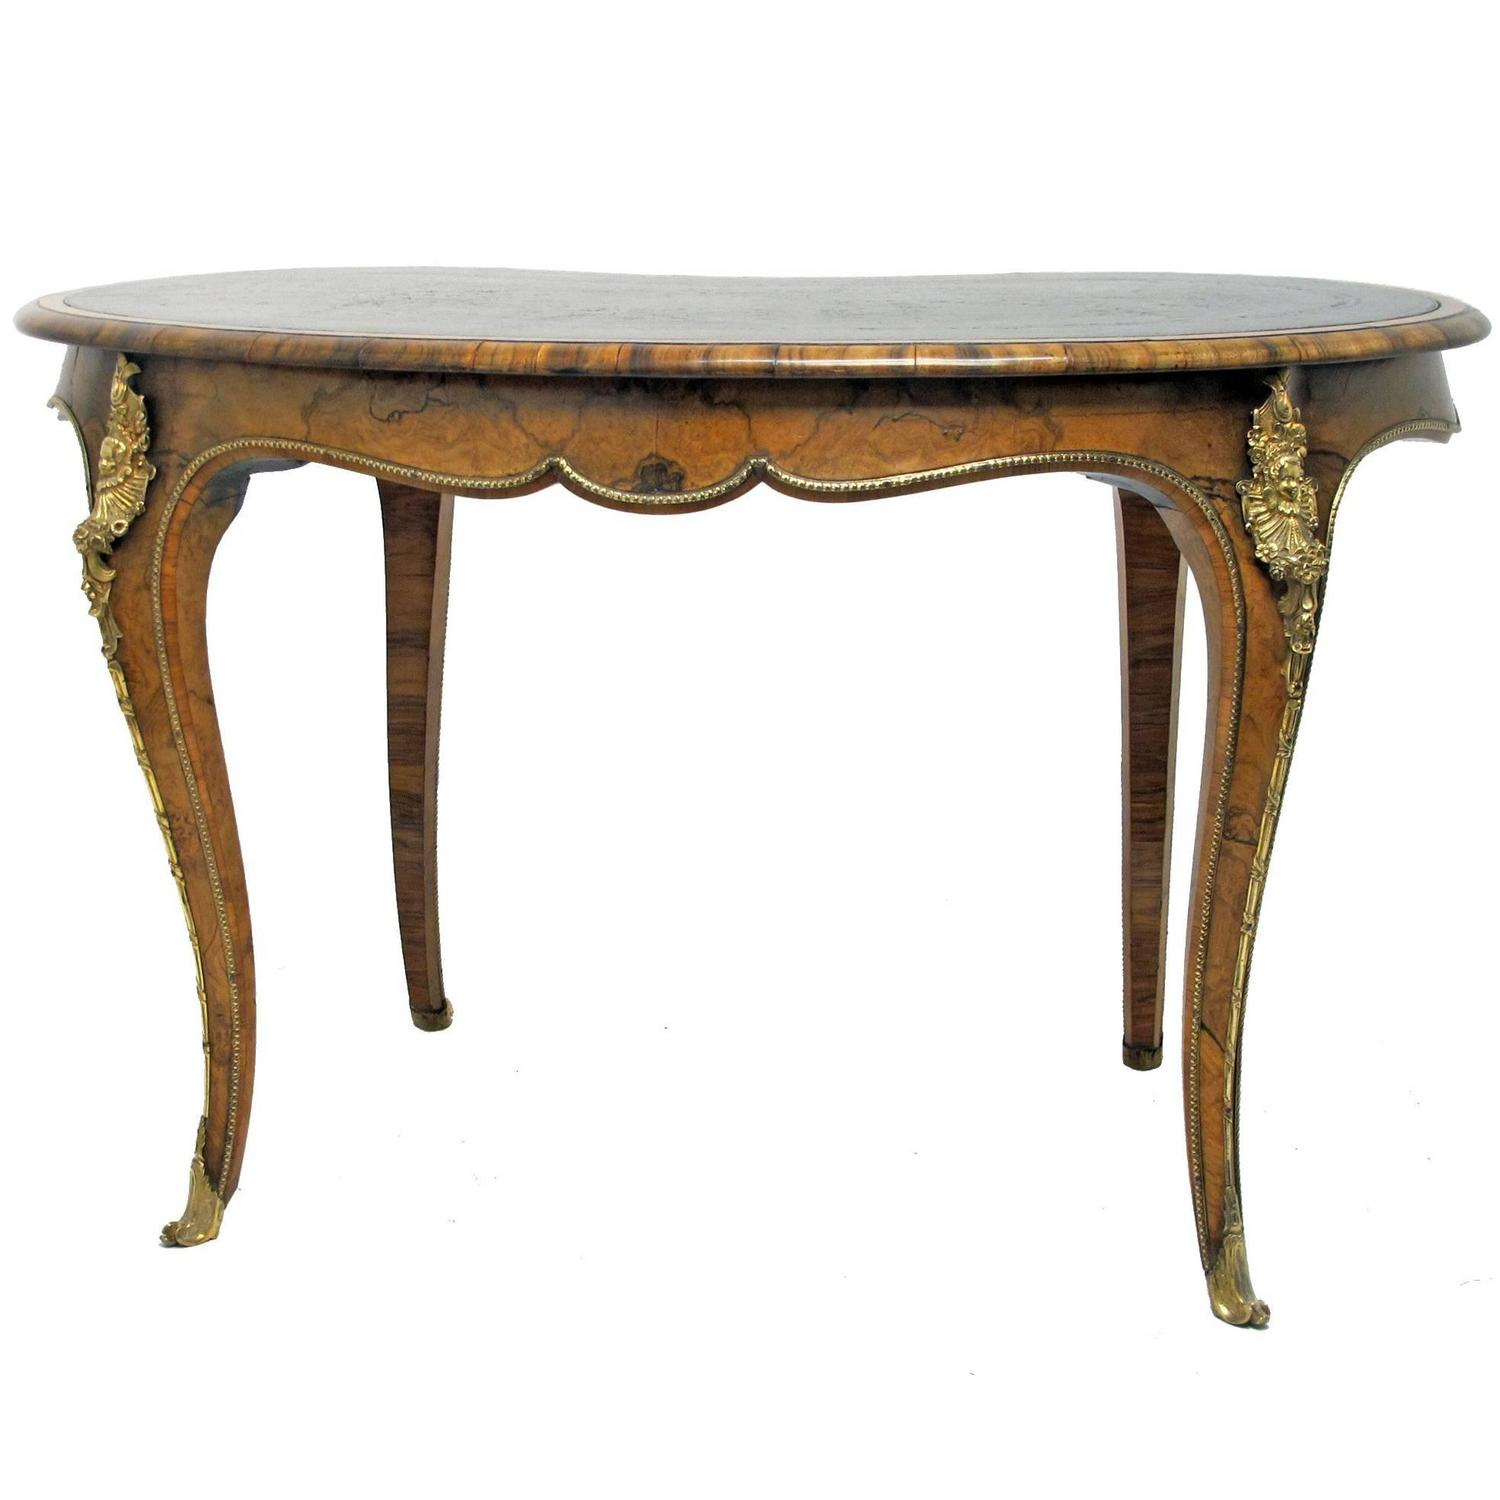 19th century french kidney shaped desk for sale at 1stdibs for Kidney desk for sale